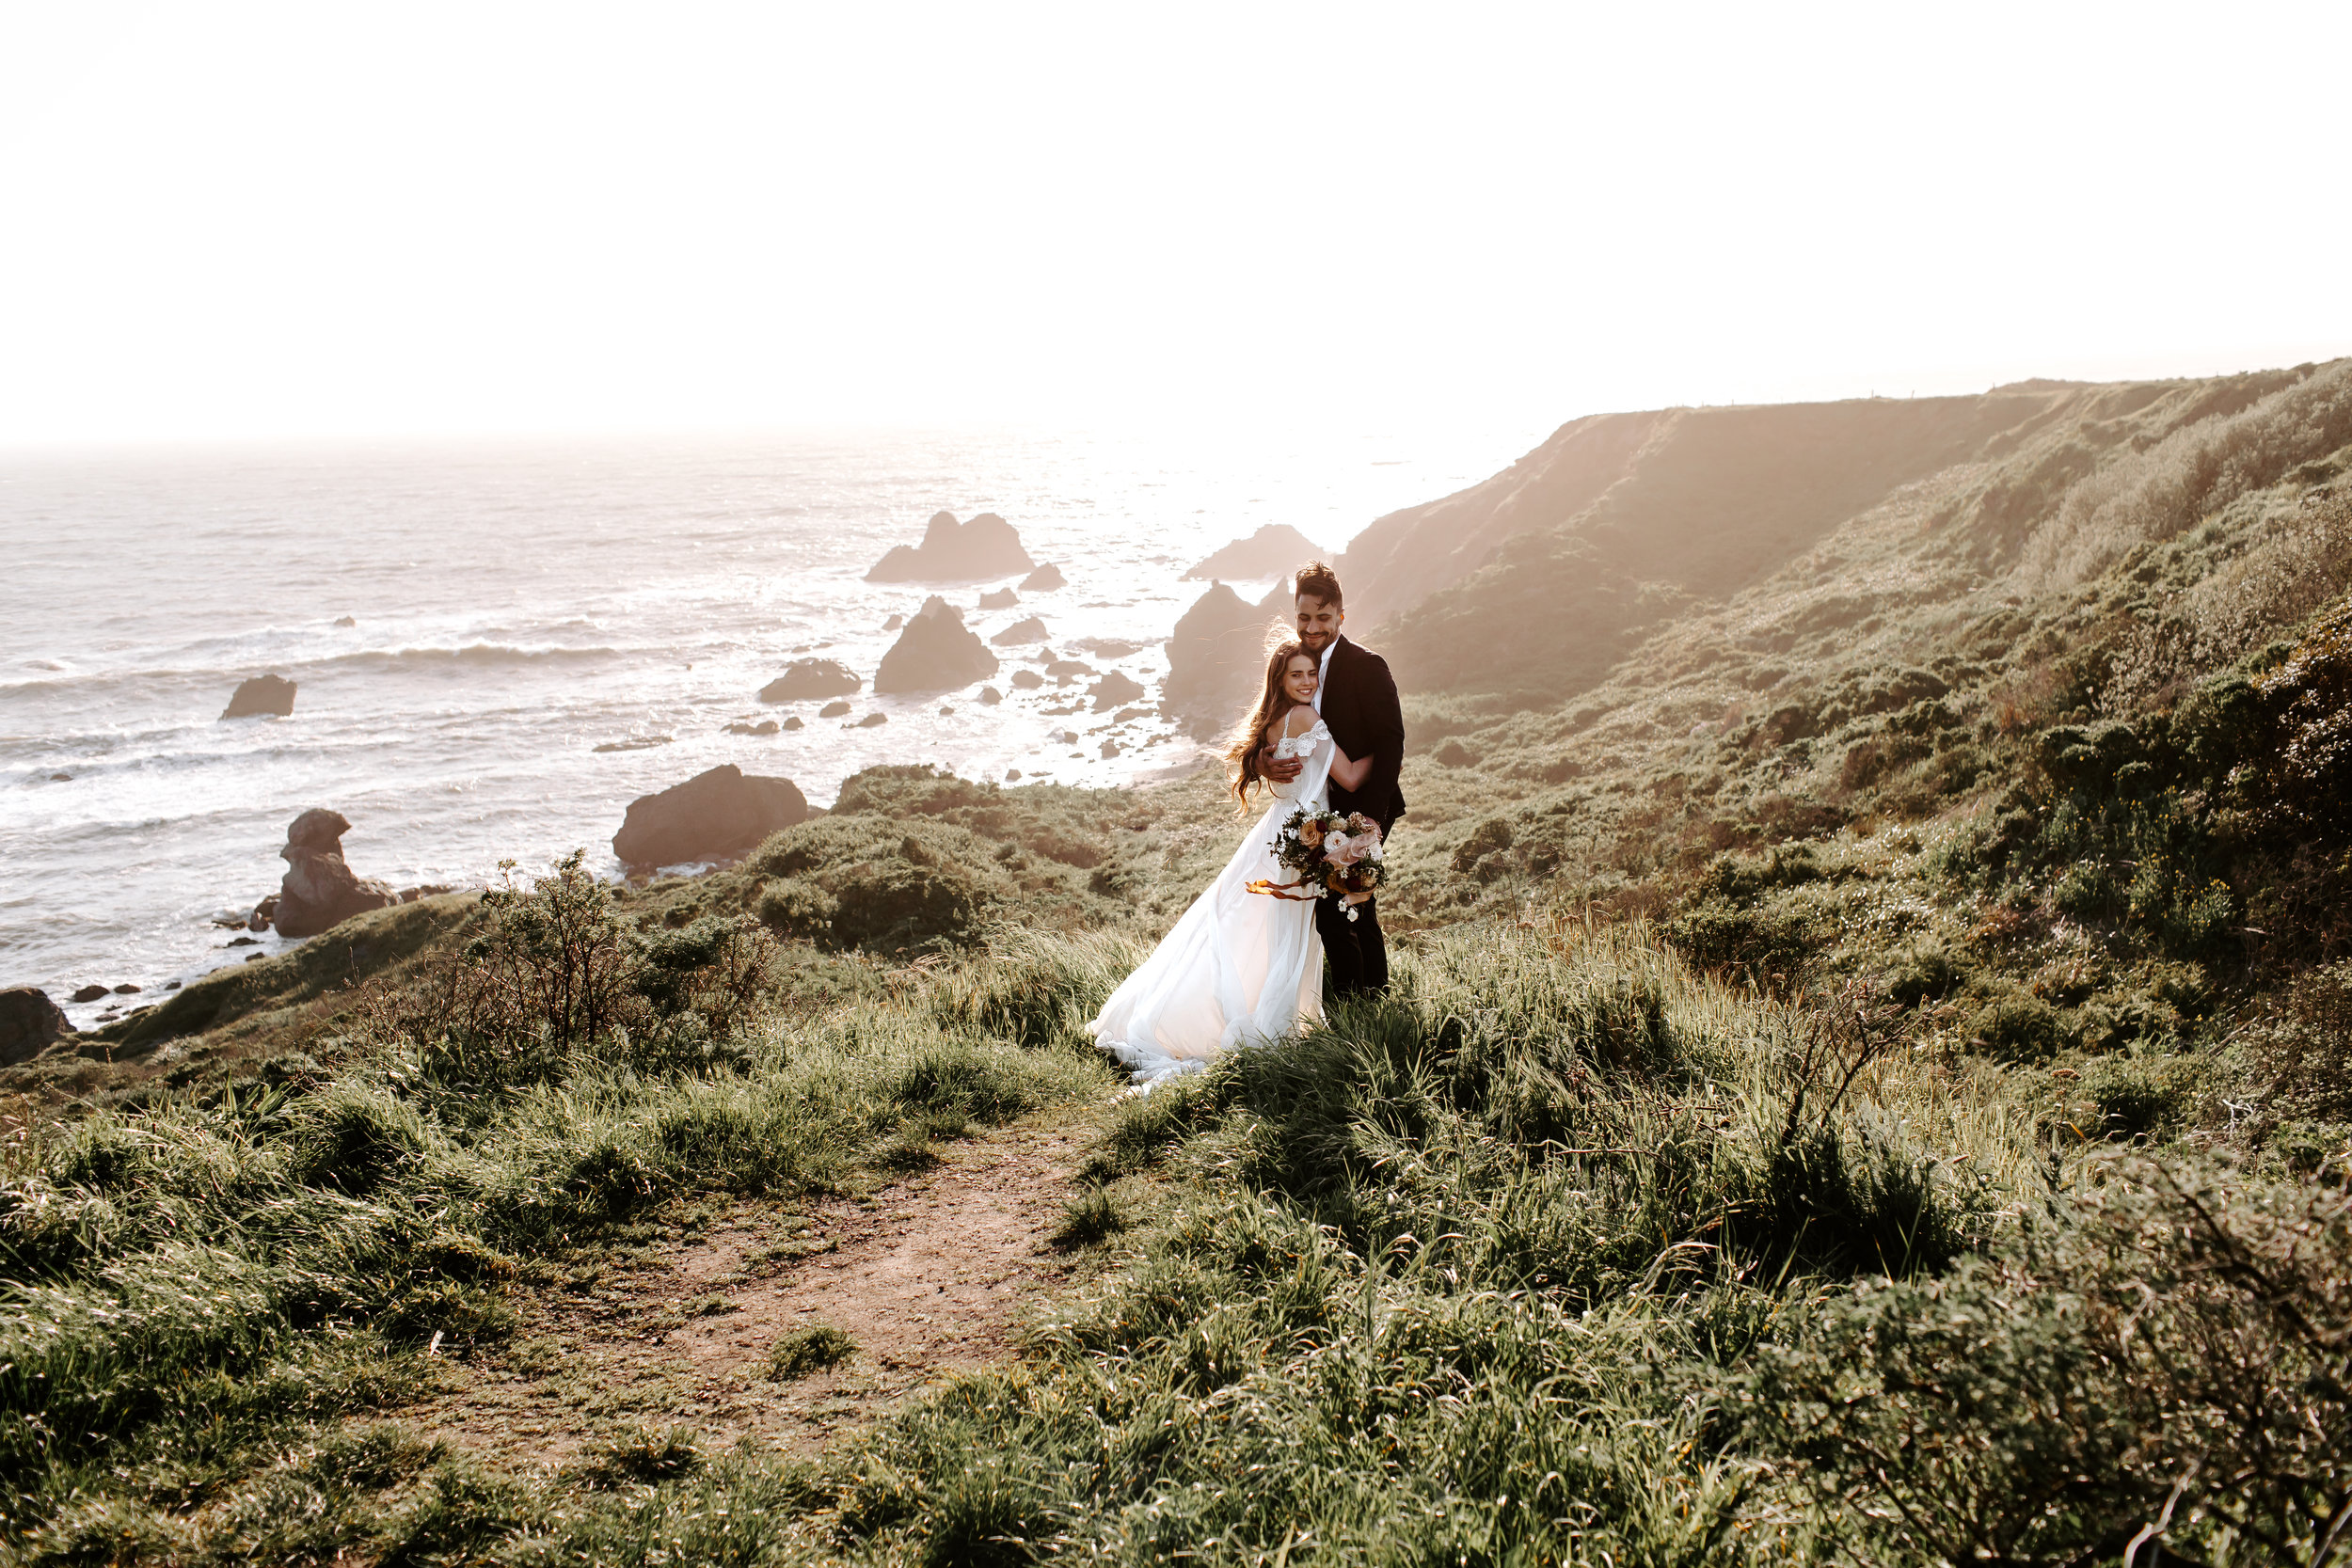 NorthernCaliforniaElopement_6.jpg